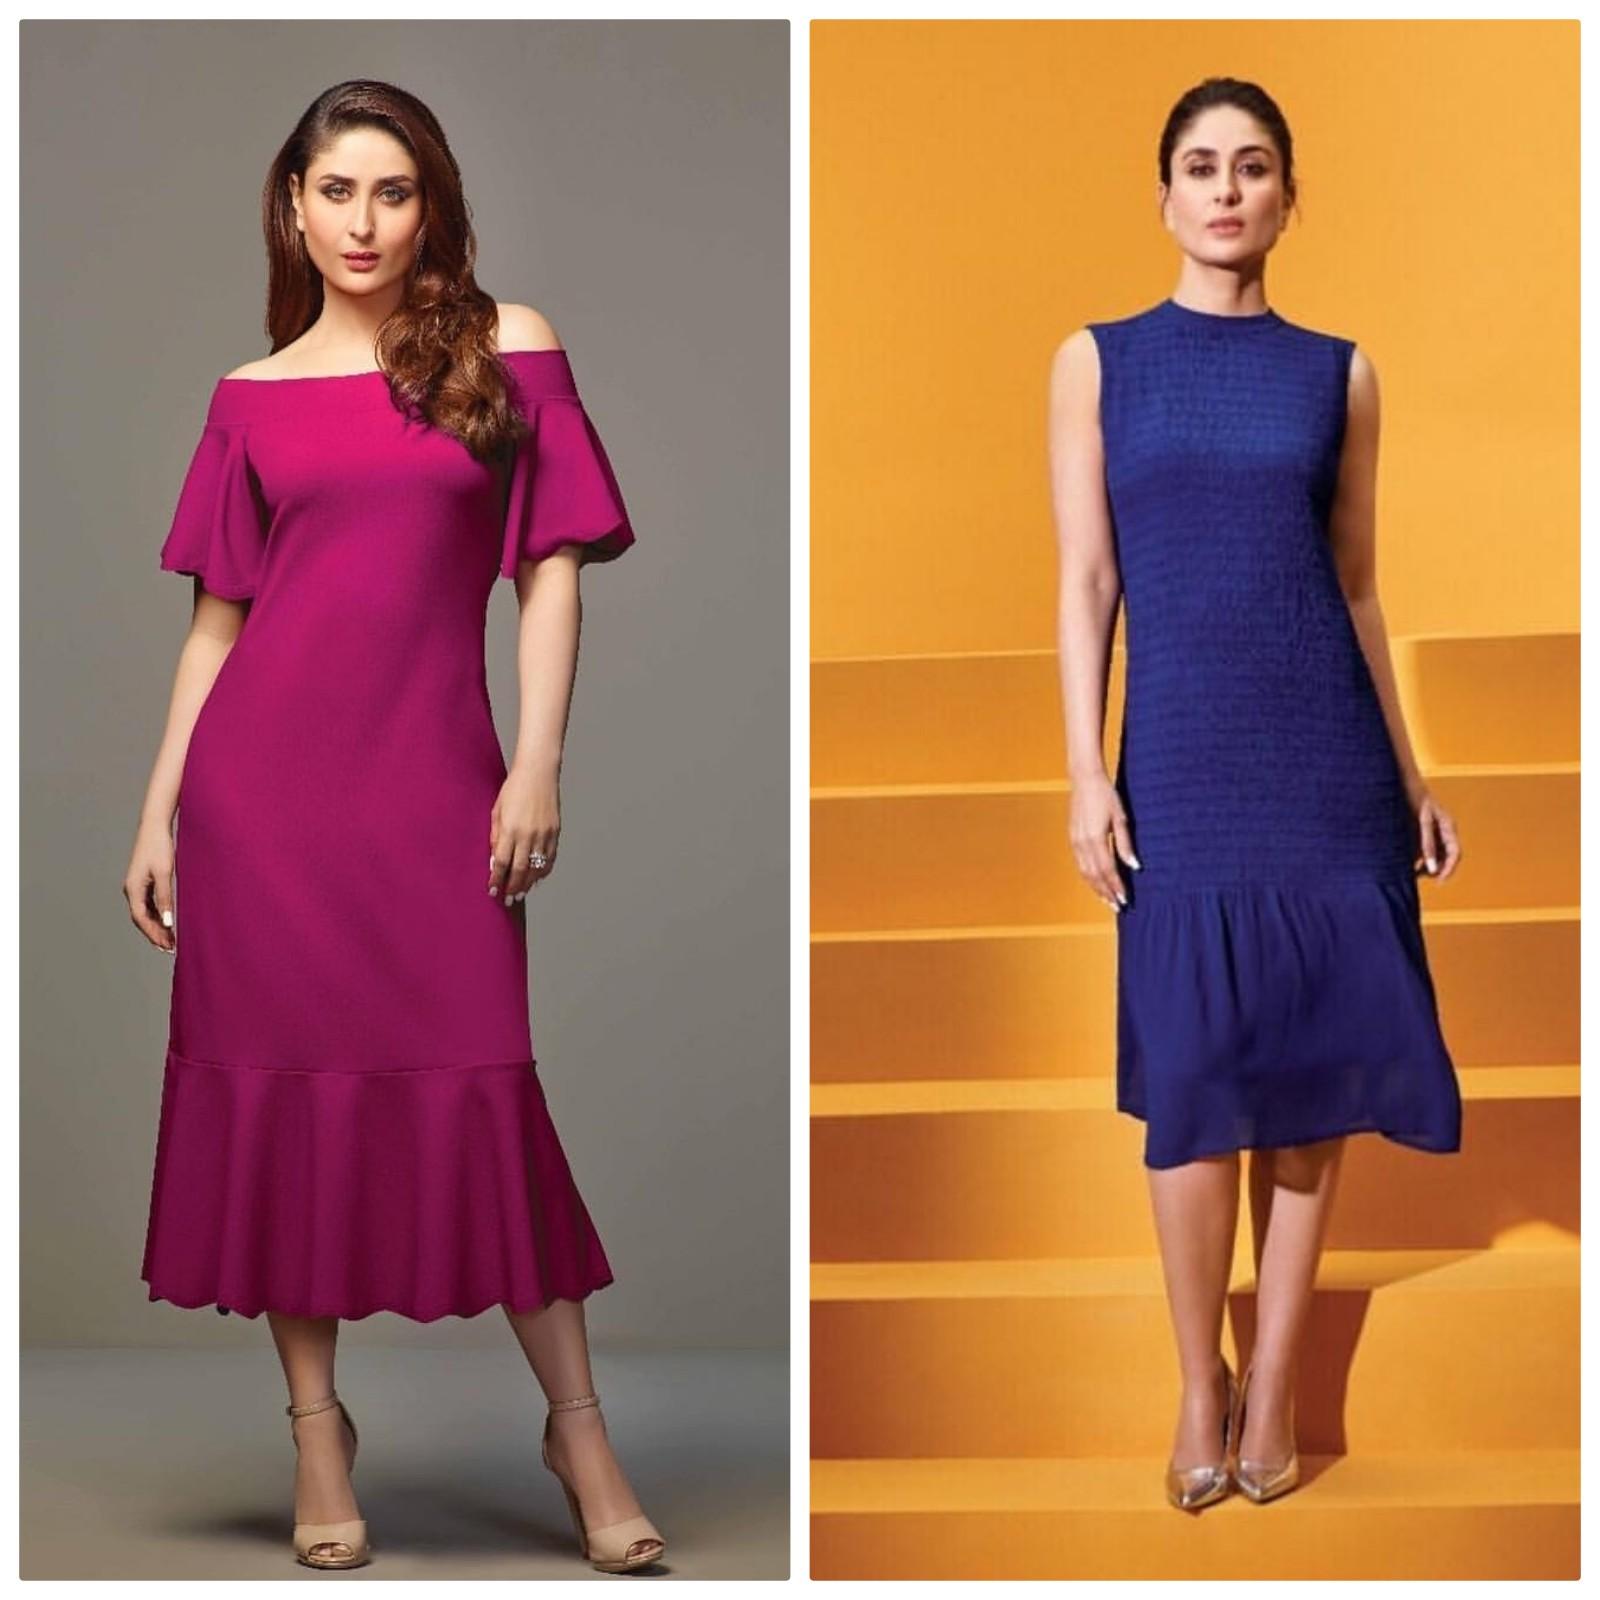 kareena kapoor Anita Dongre Dress Designs